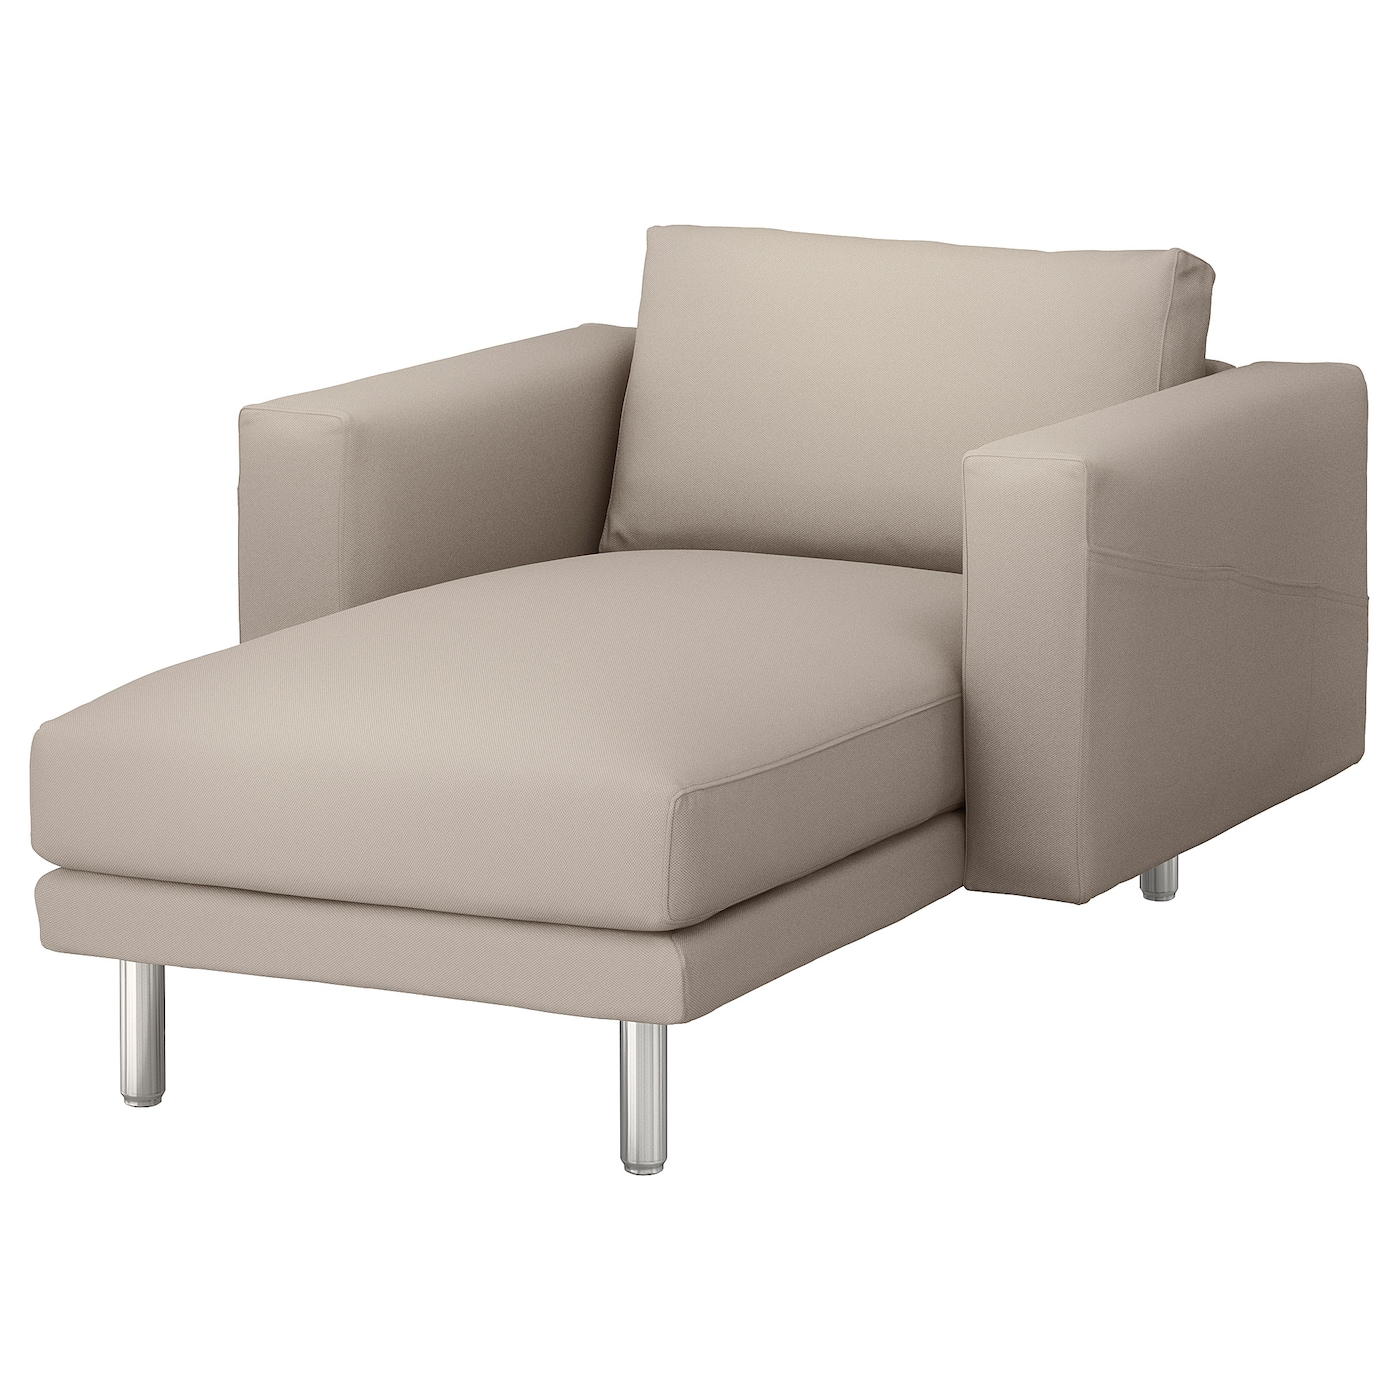 ikea sofa with chaise modular sofas sectional ikea thesofa